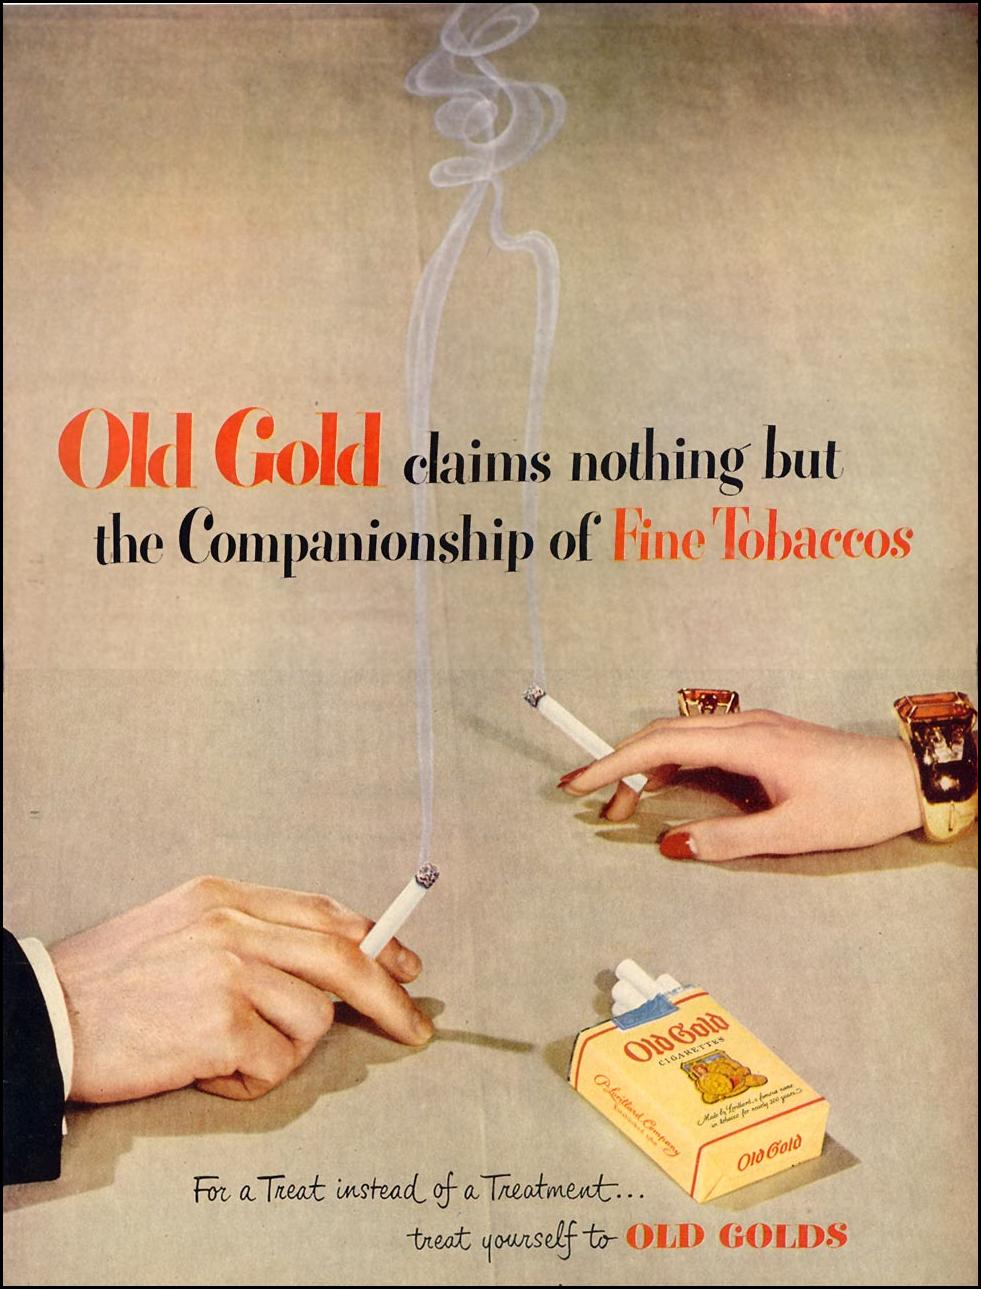 OLD GOLD CIGARETTES LIFE 06/05/1950 p. 37